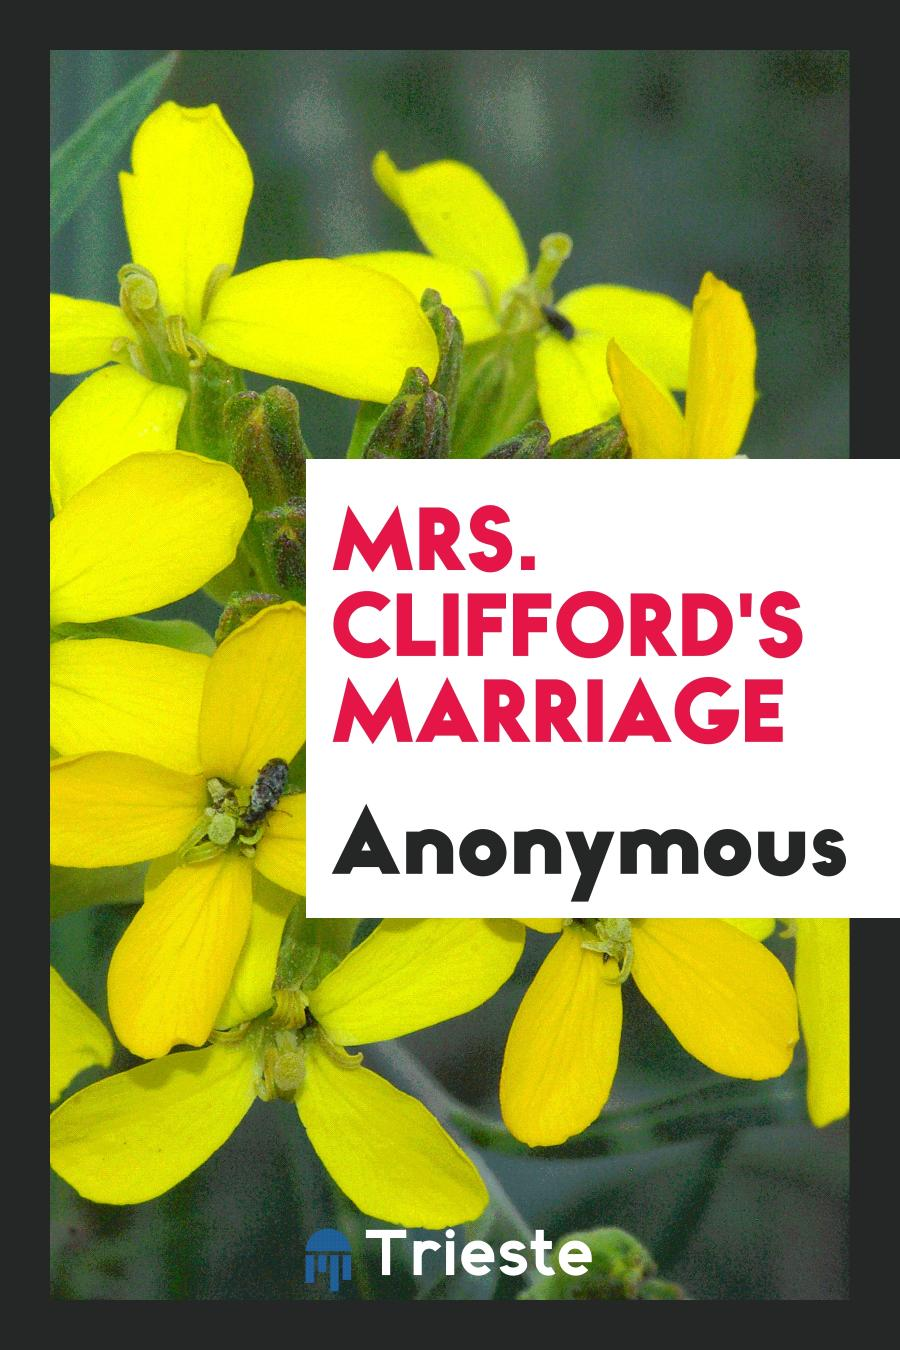 Mrs. Clifford's Marriage